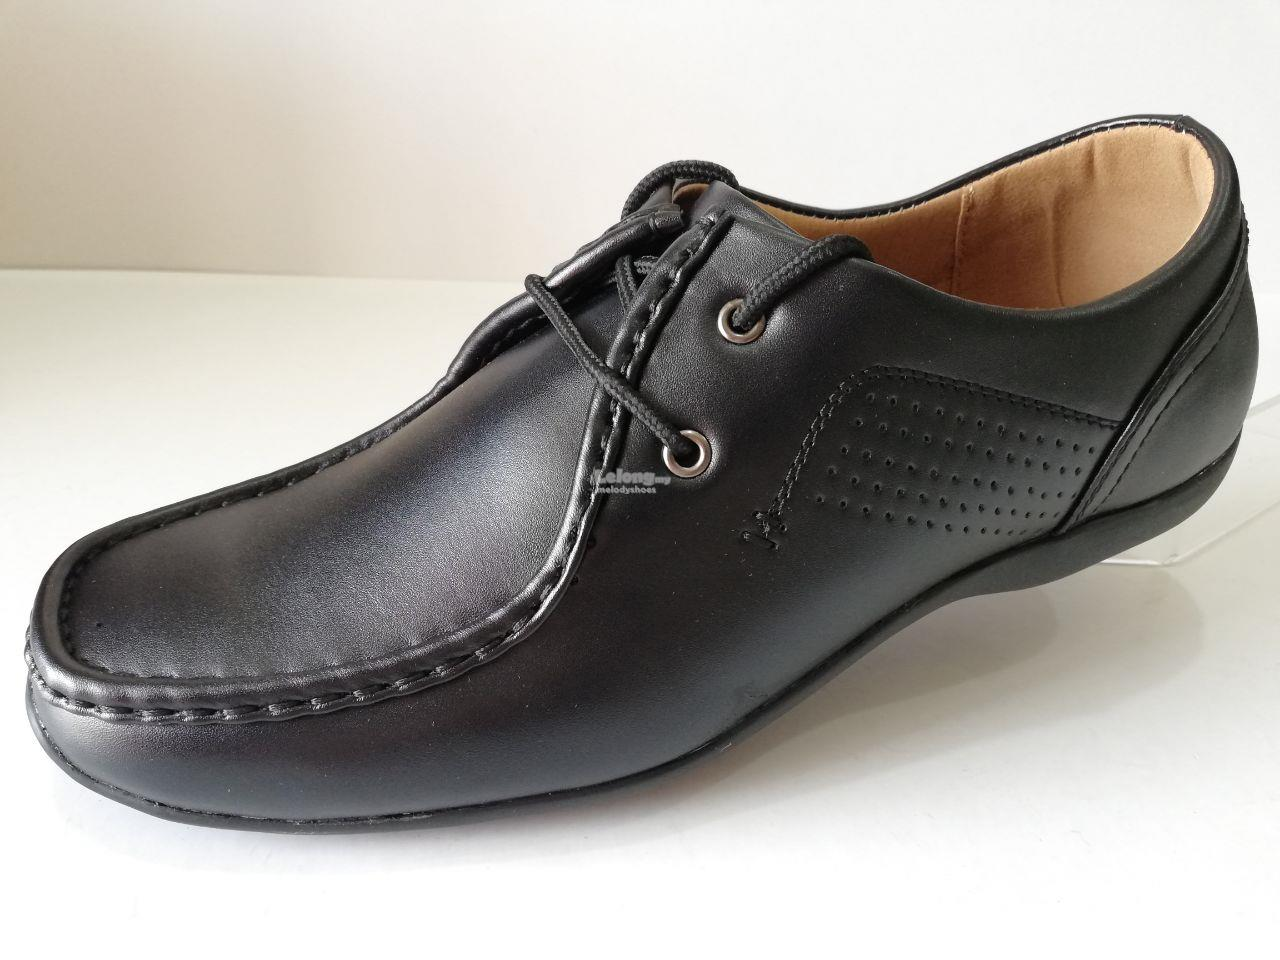 f0e3053a0aef8 ... Wedding Source · 30119BK MACERIO MEN FORMAL SHOES end 4 20 2019 12 13 PM